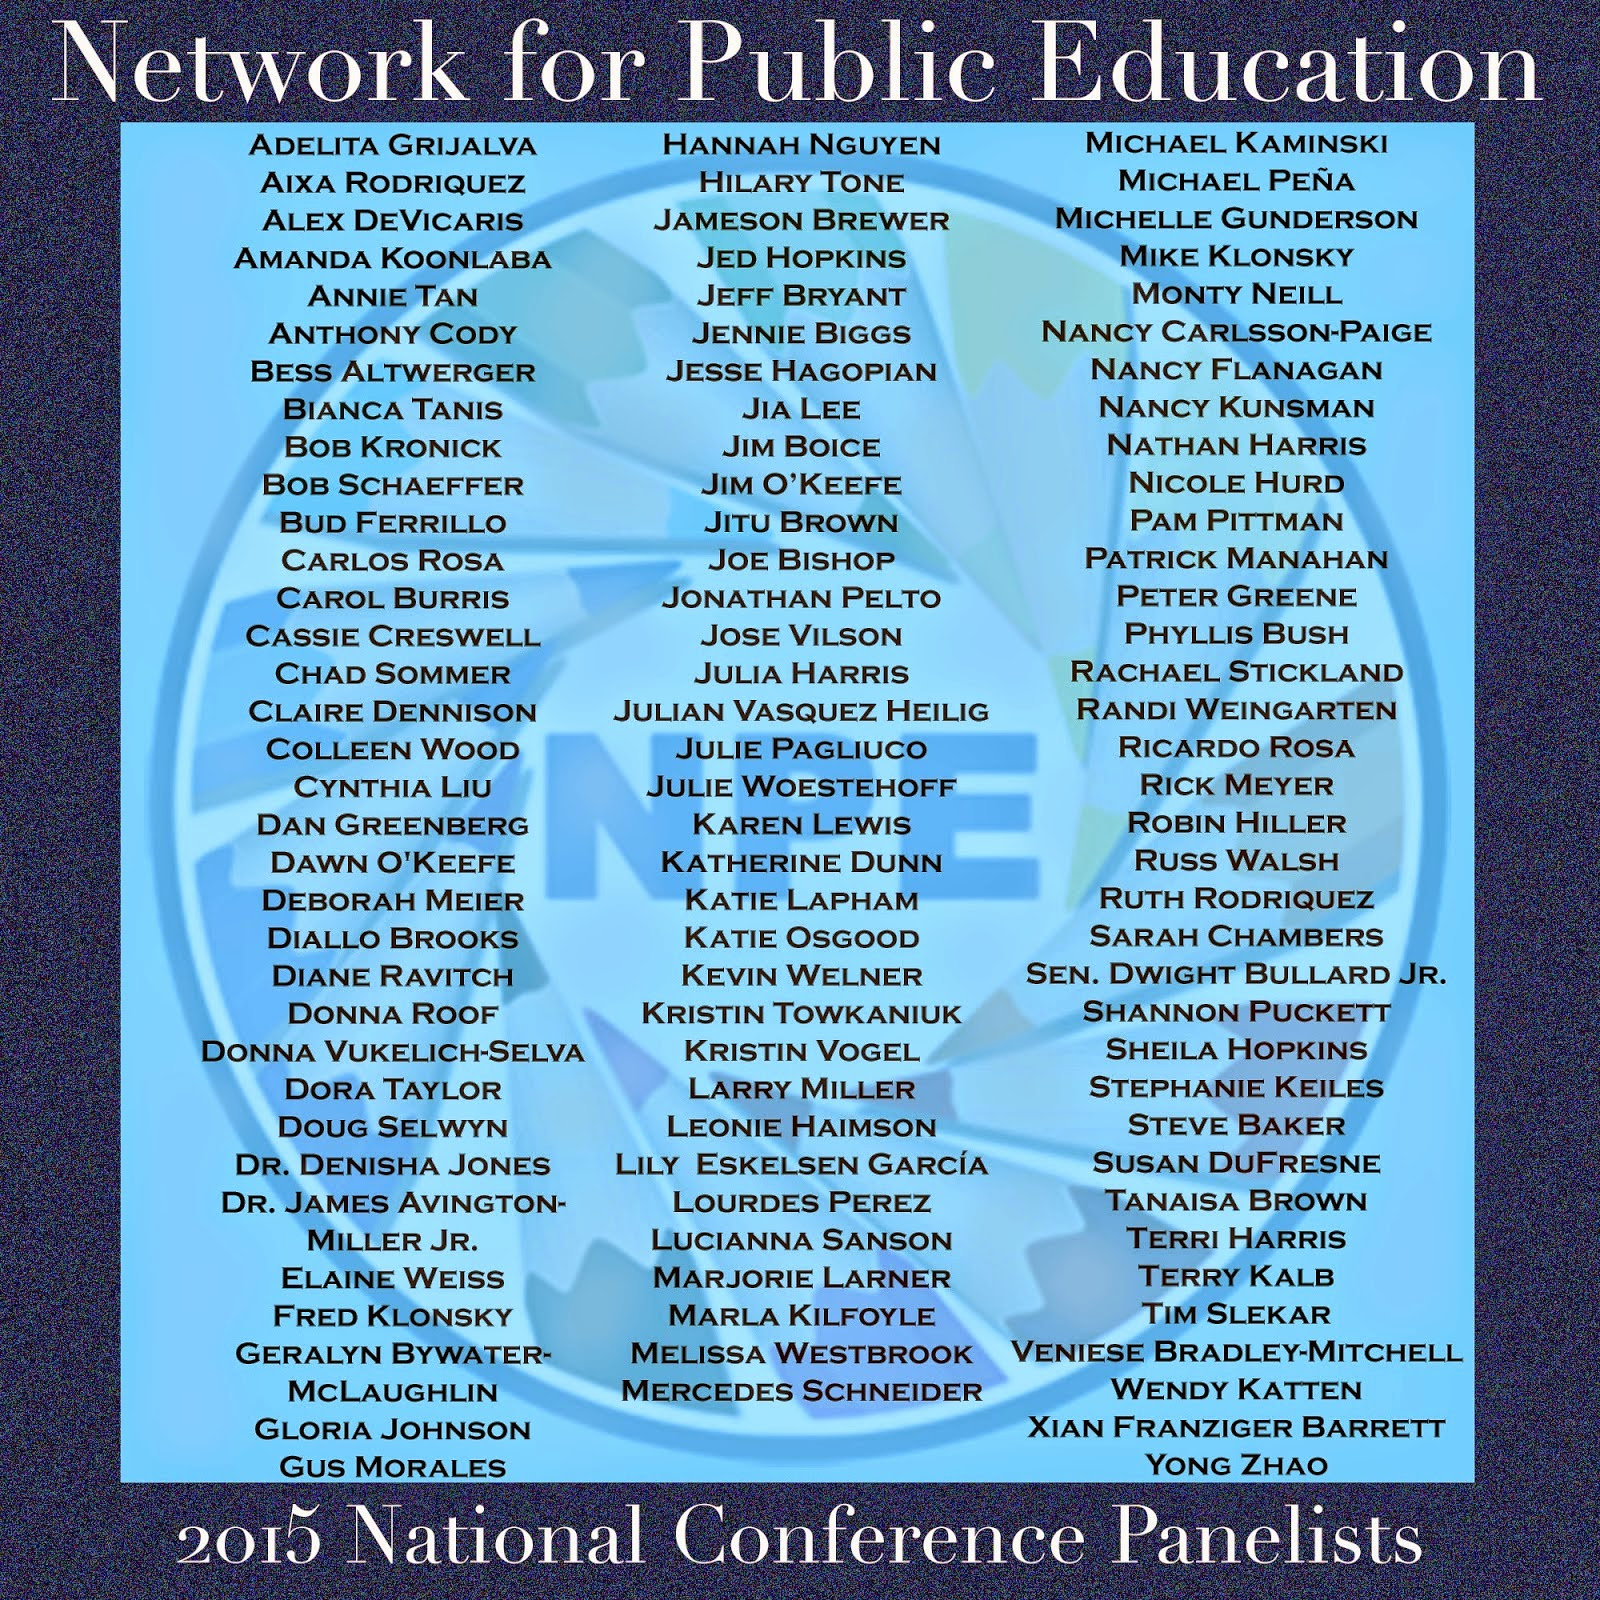 PANELISTS AT UPCOMING NPE CONFERENCE IN CHICAGO